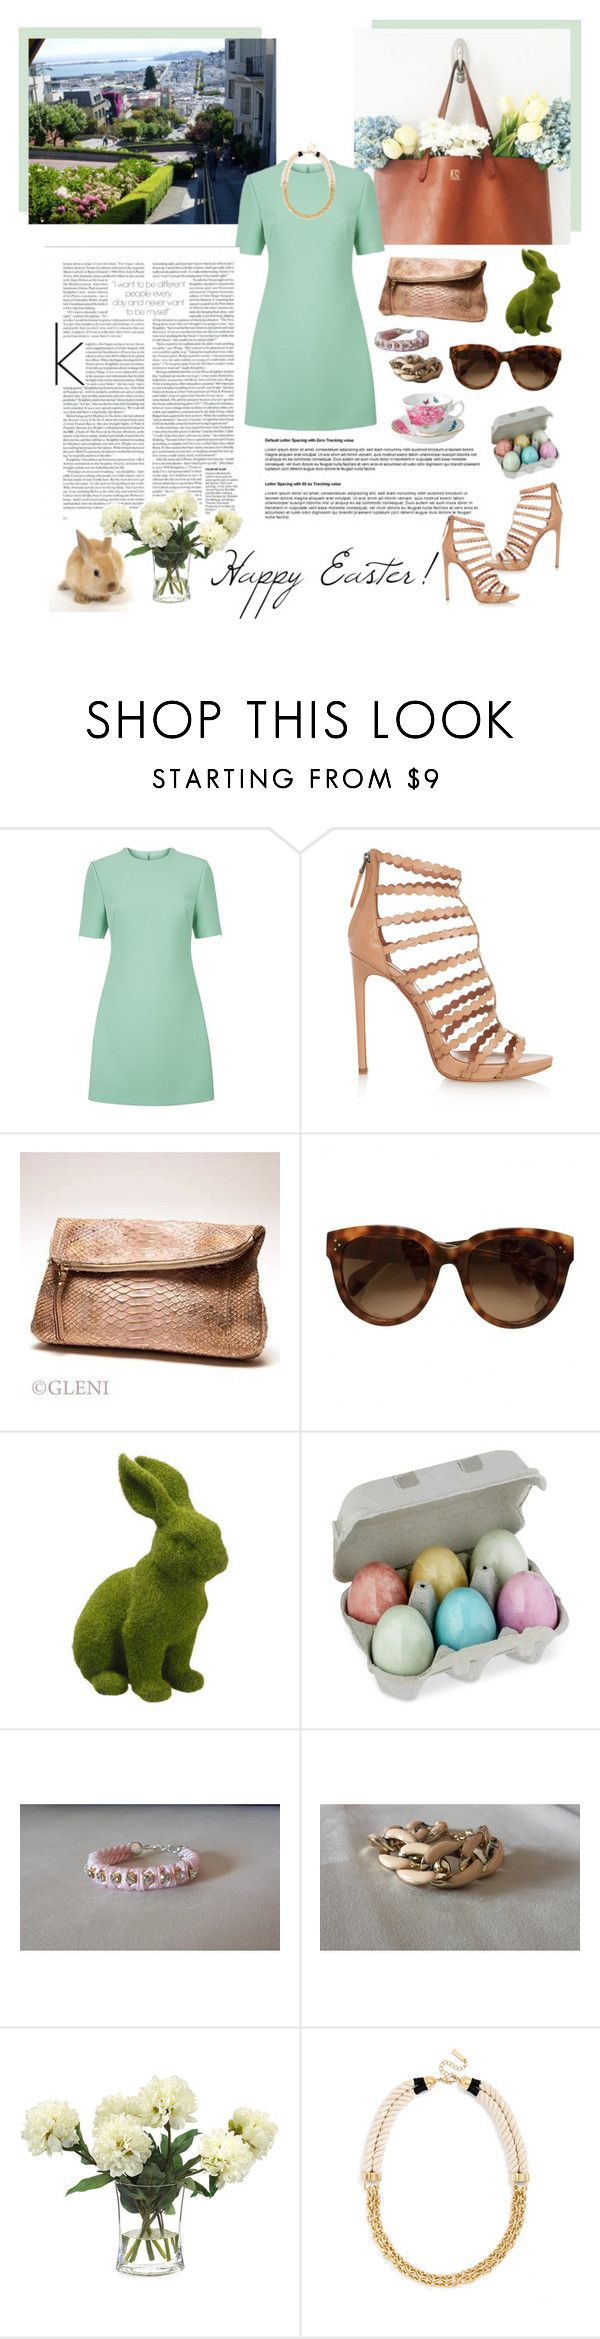 Happy Easter dear Poly friends! by inesss on Polyvore featuring moda, McQ by Alexander McQueen, Alaïa, John-Richard and Chanel